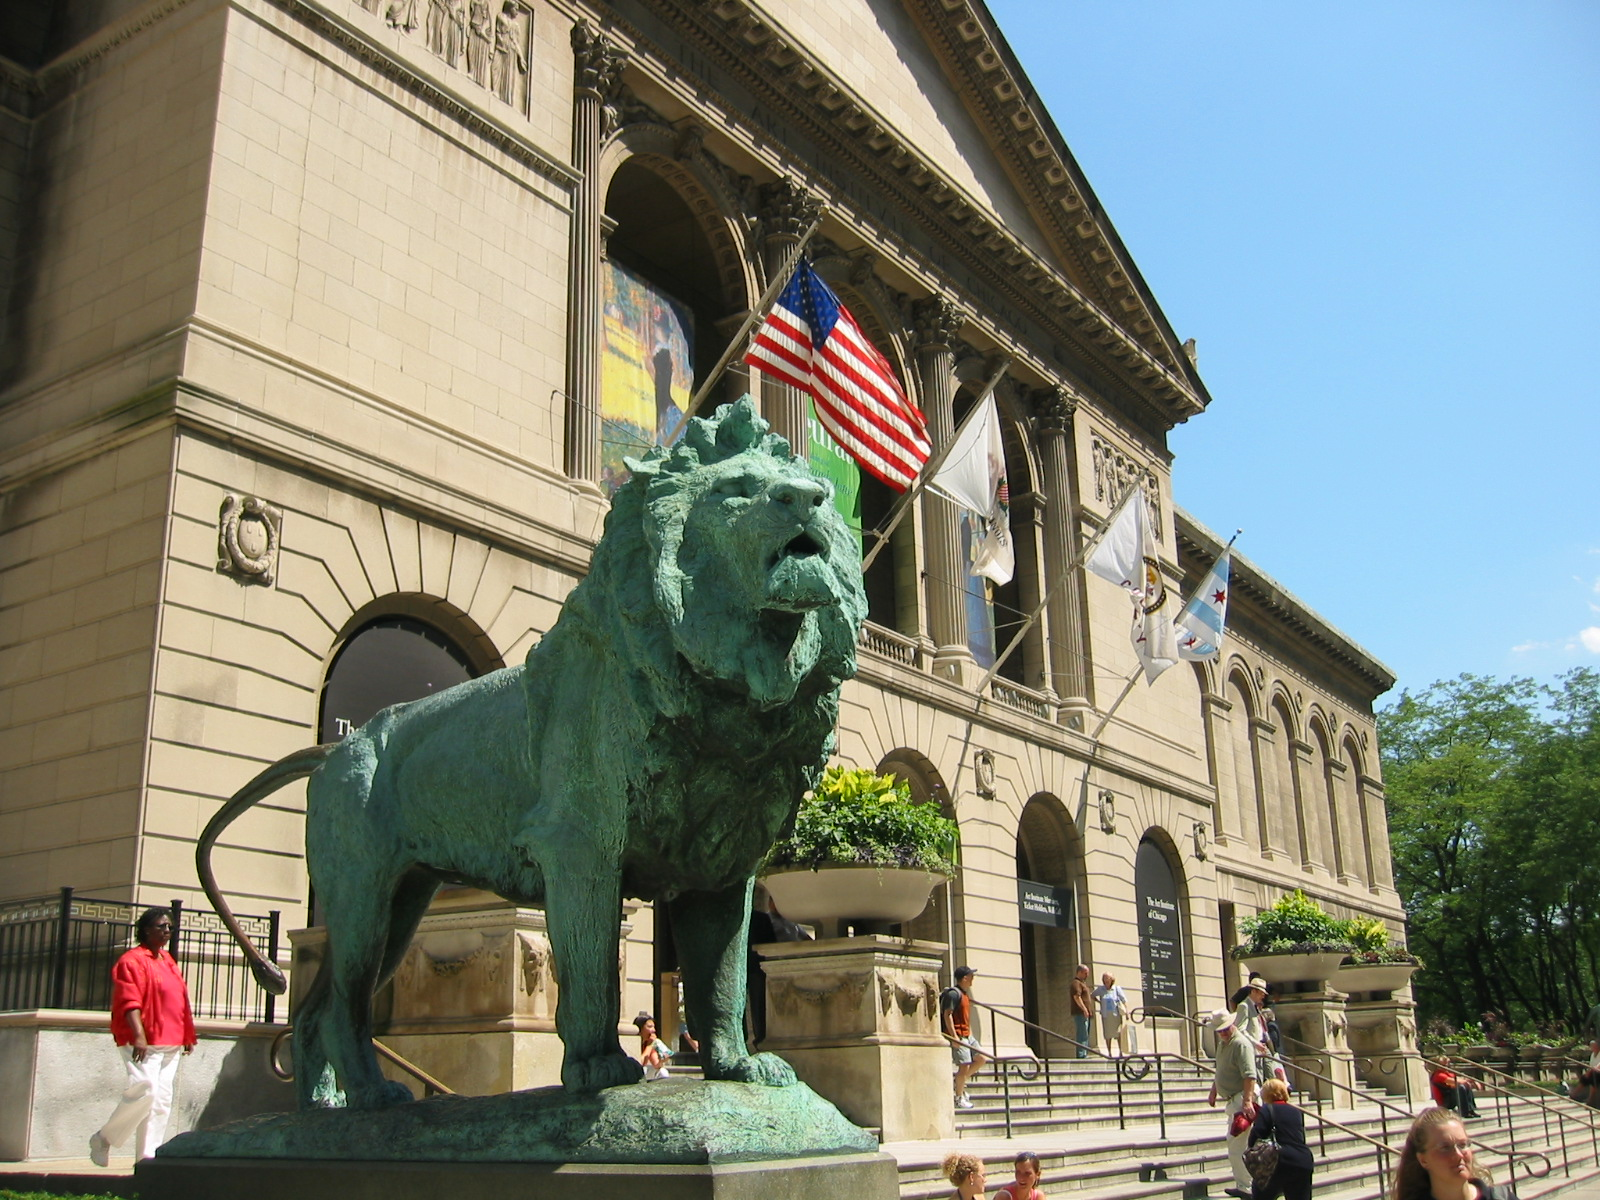 School of the Art Institute of Chicago, Chicago, Illinois